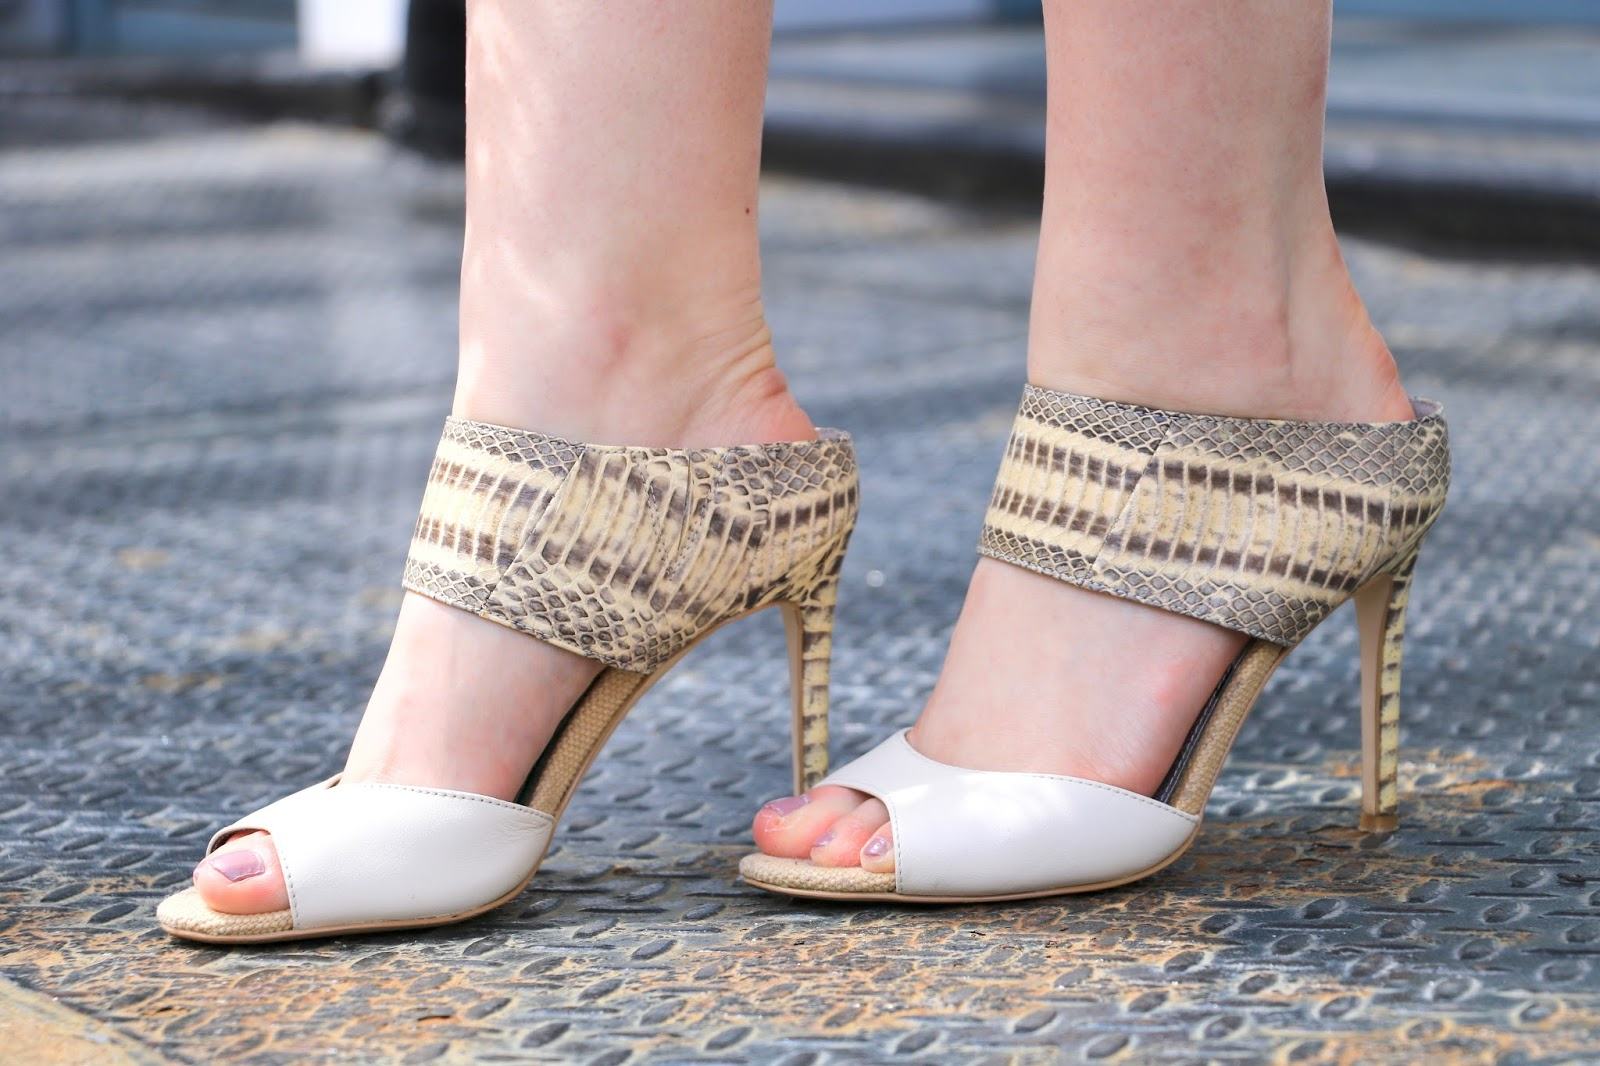 nyc fashion blogger Kathleen Harper wearing Sam Edelman white heeled mules